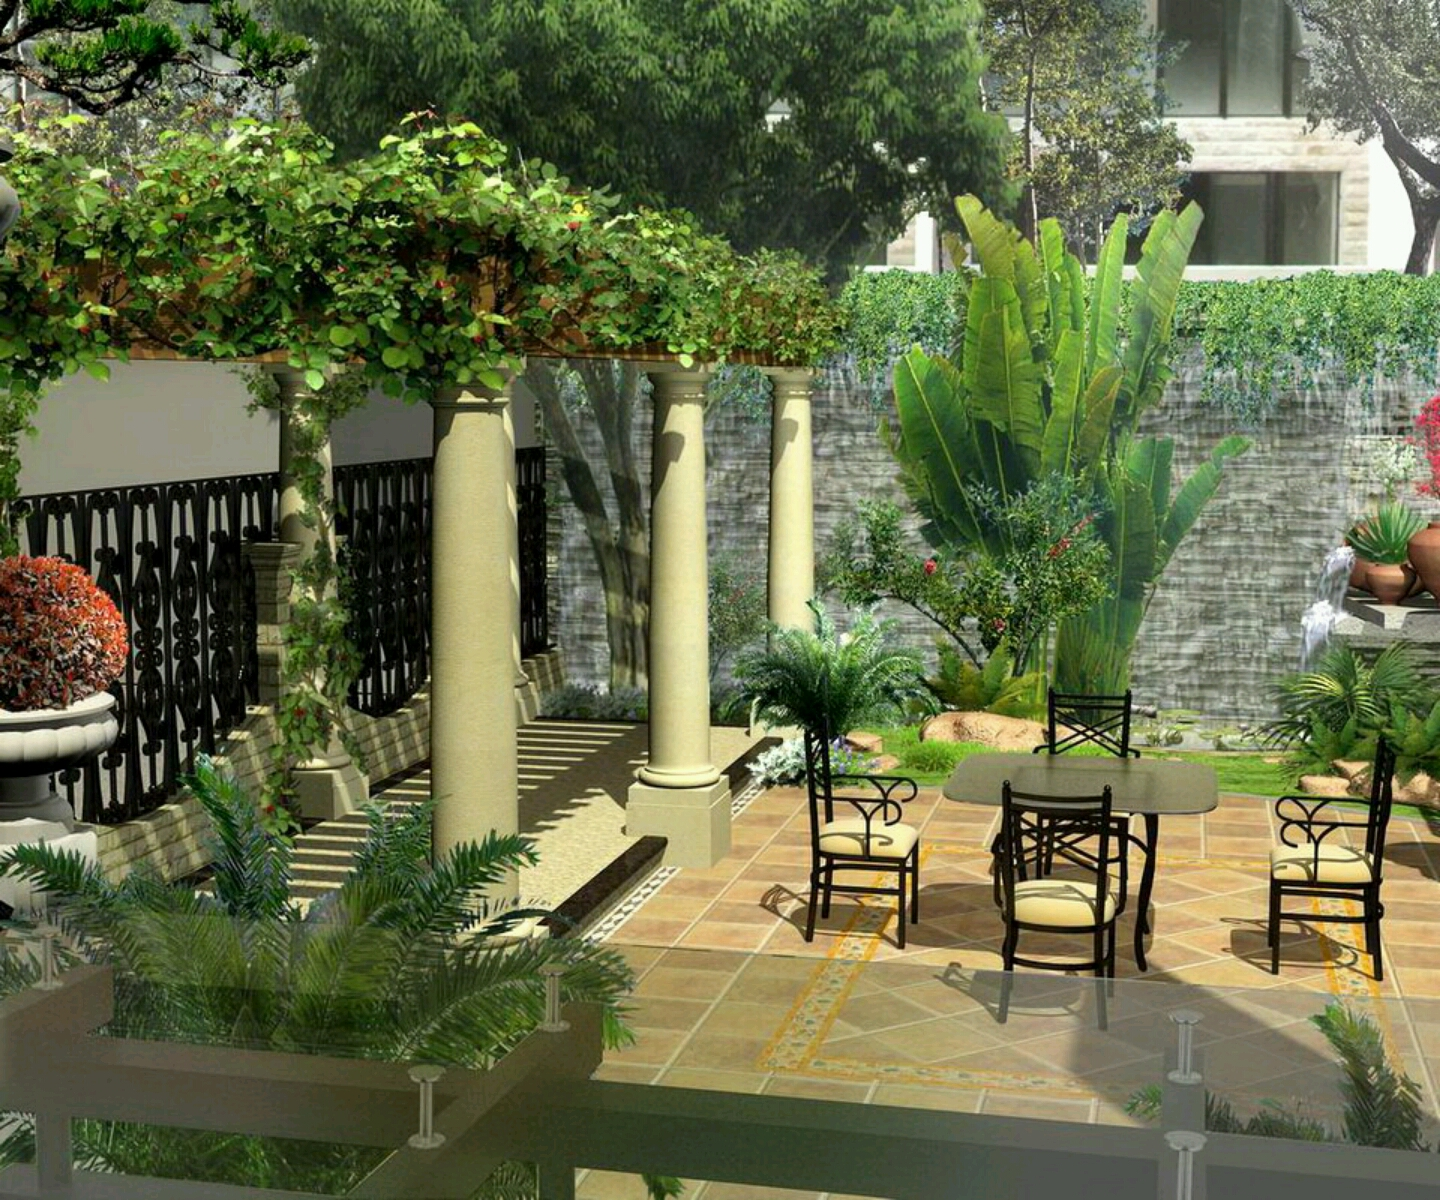 New home designs latest modern homes gardens designs for New house garden design ideas